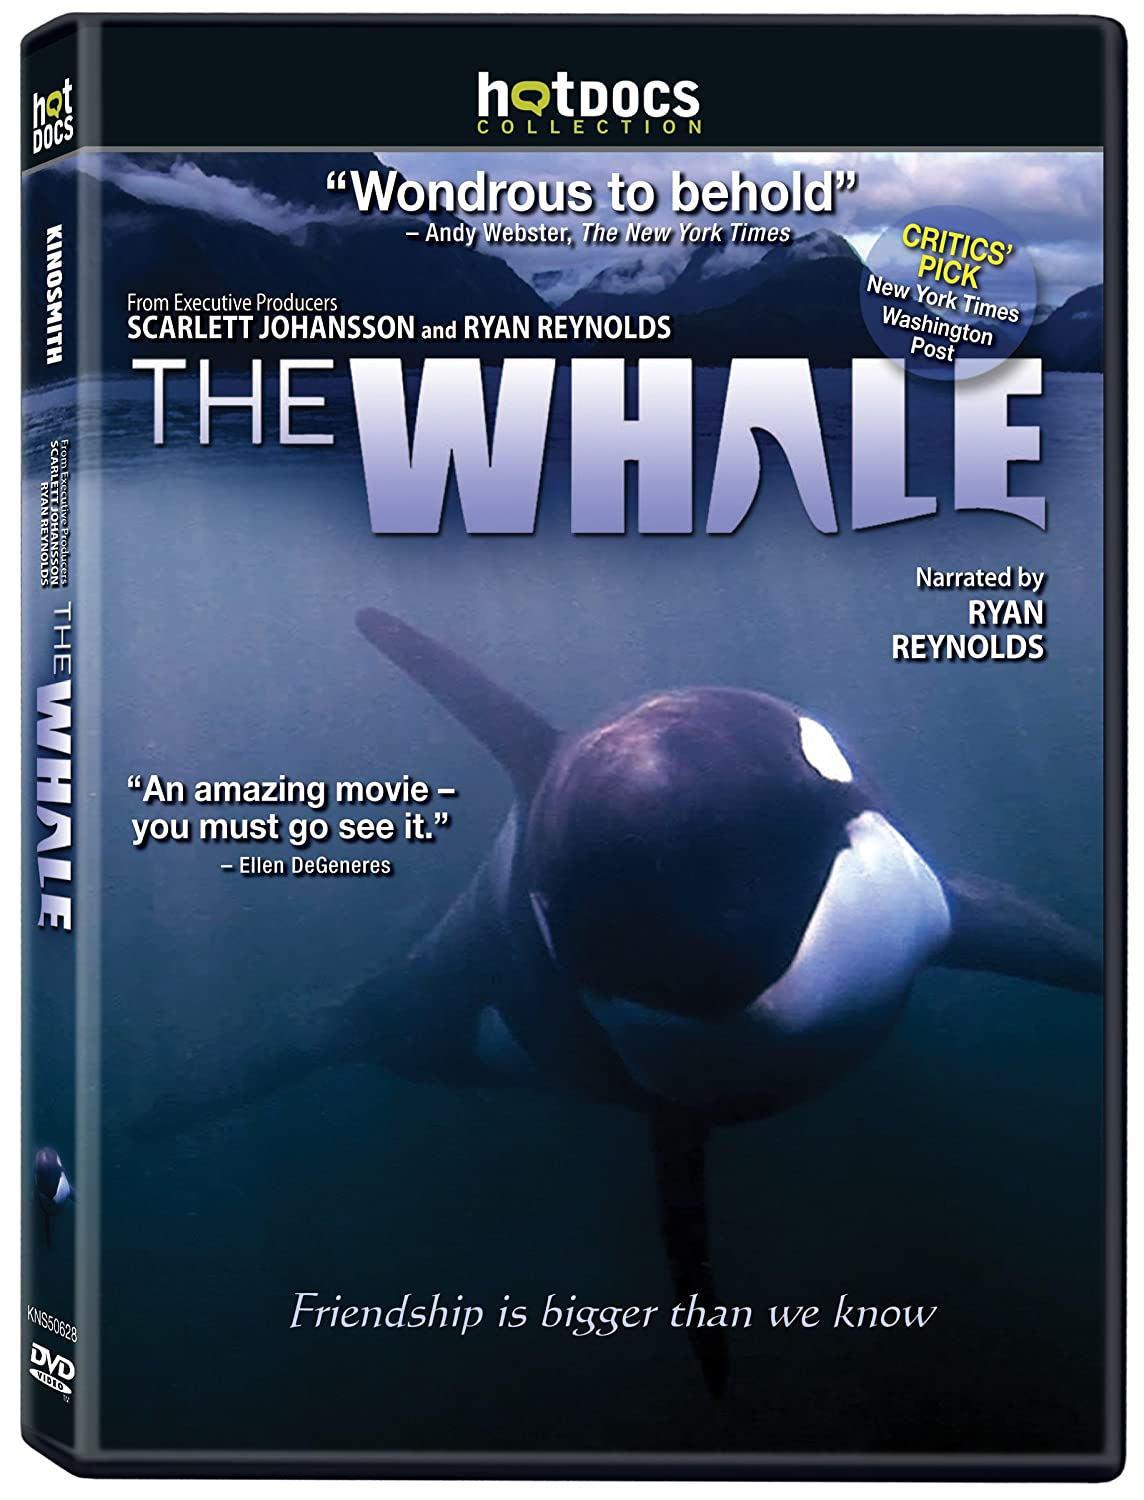 The Whale Narrated by Ryan Reynolds eOne Films Documentary